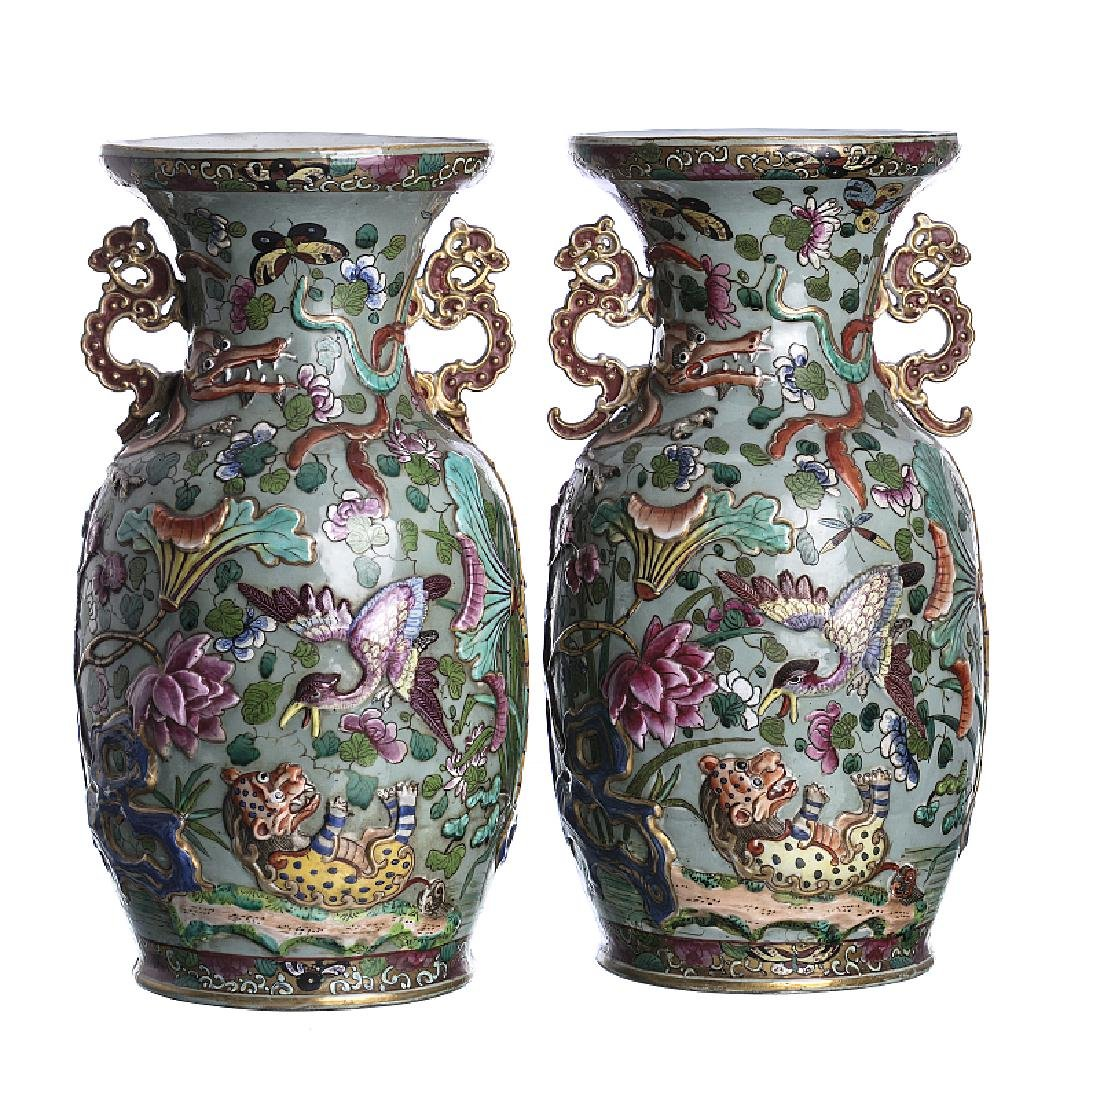 Pair of celadon porcelain relif decorated vases